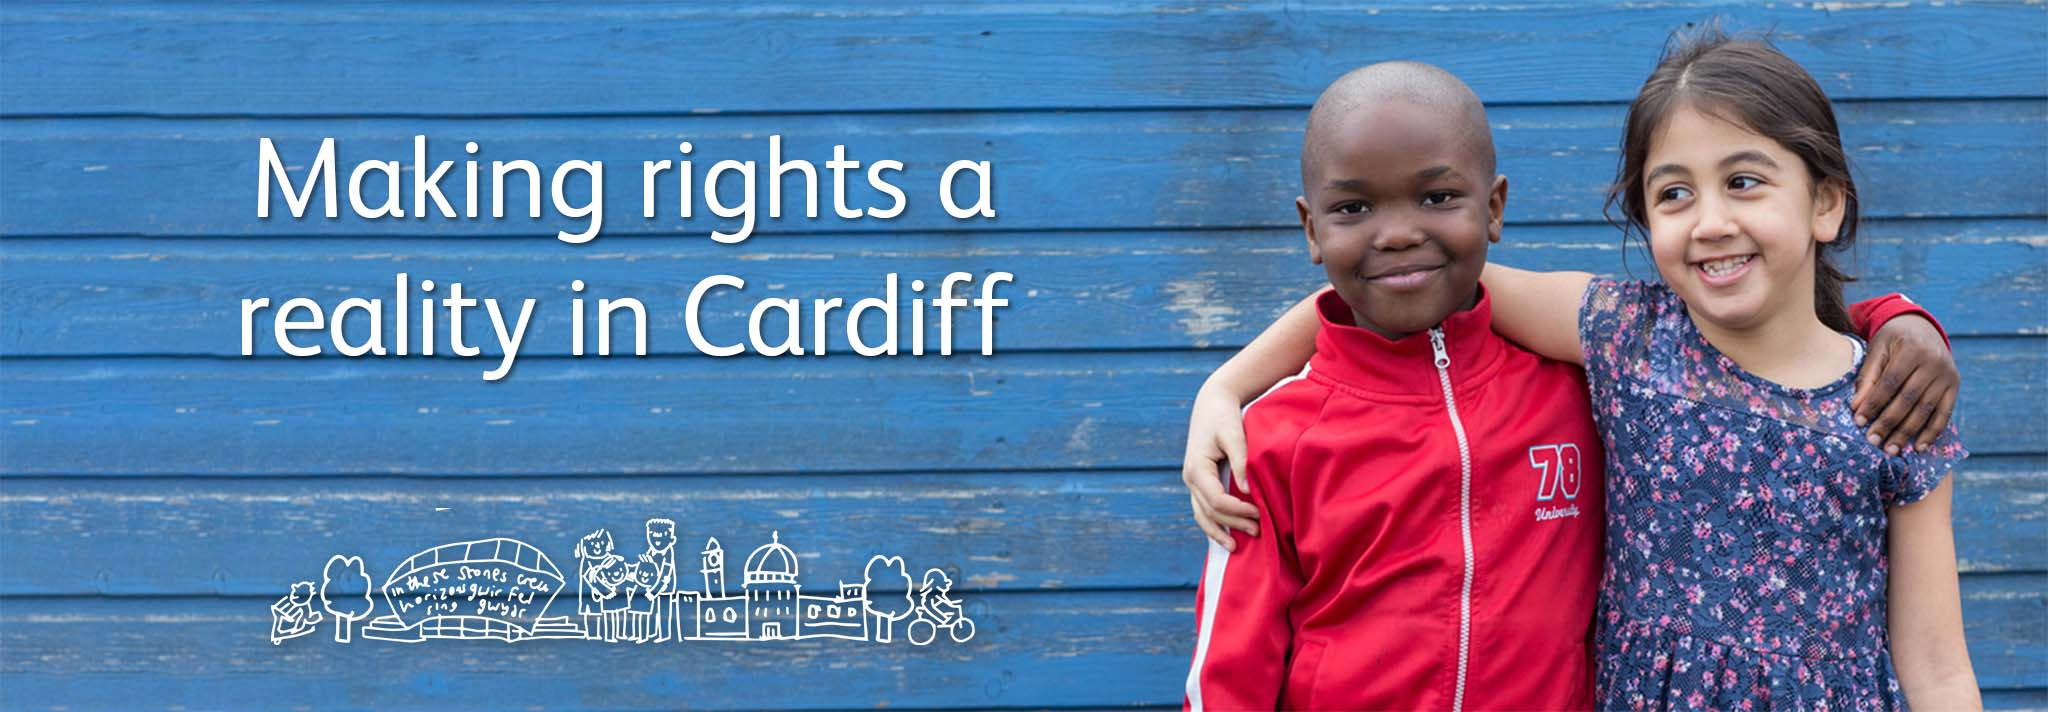 Cardiff Child Friendly City - Making rights a reality in Cardiff